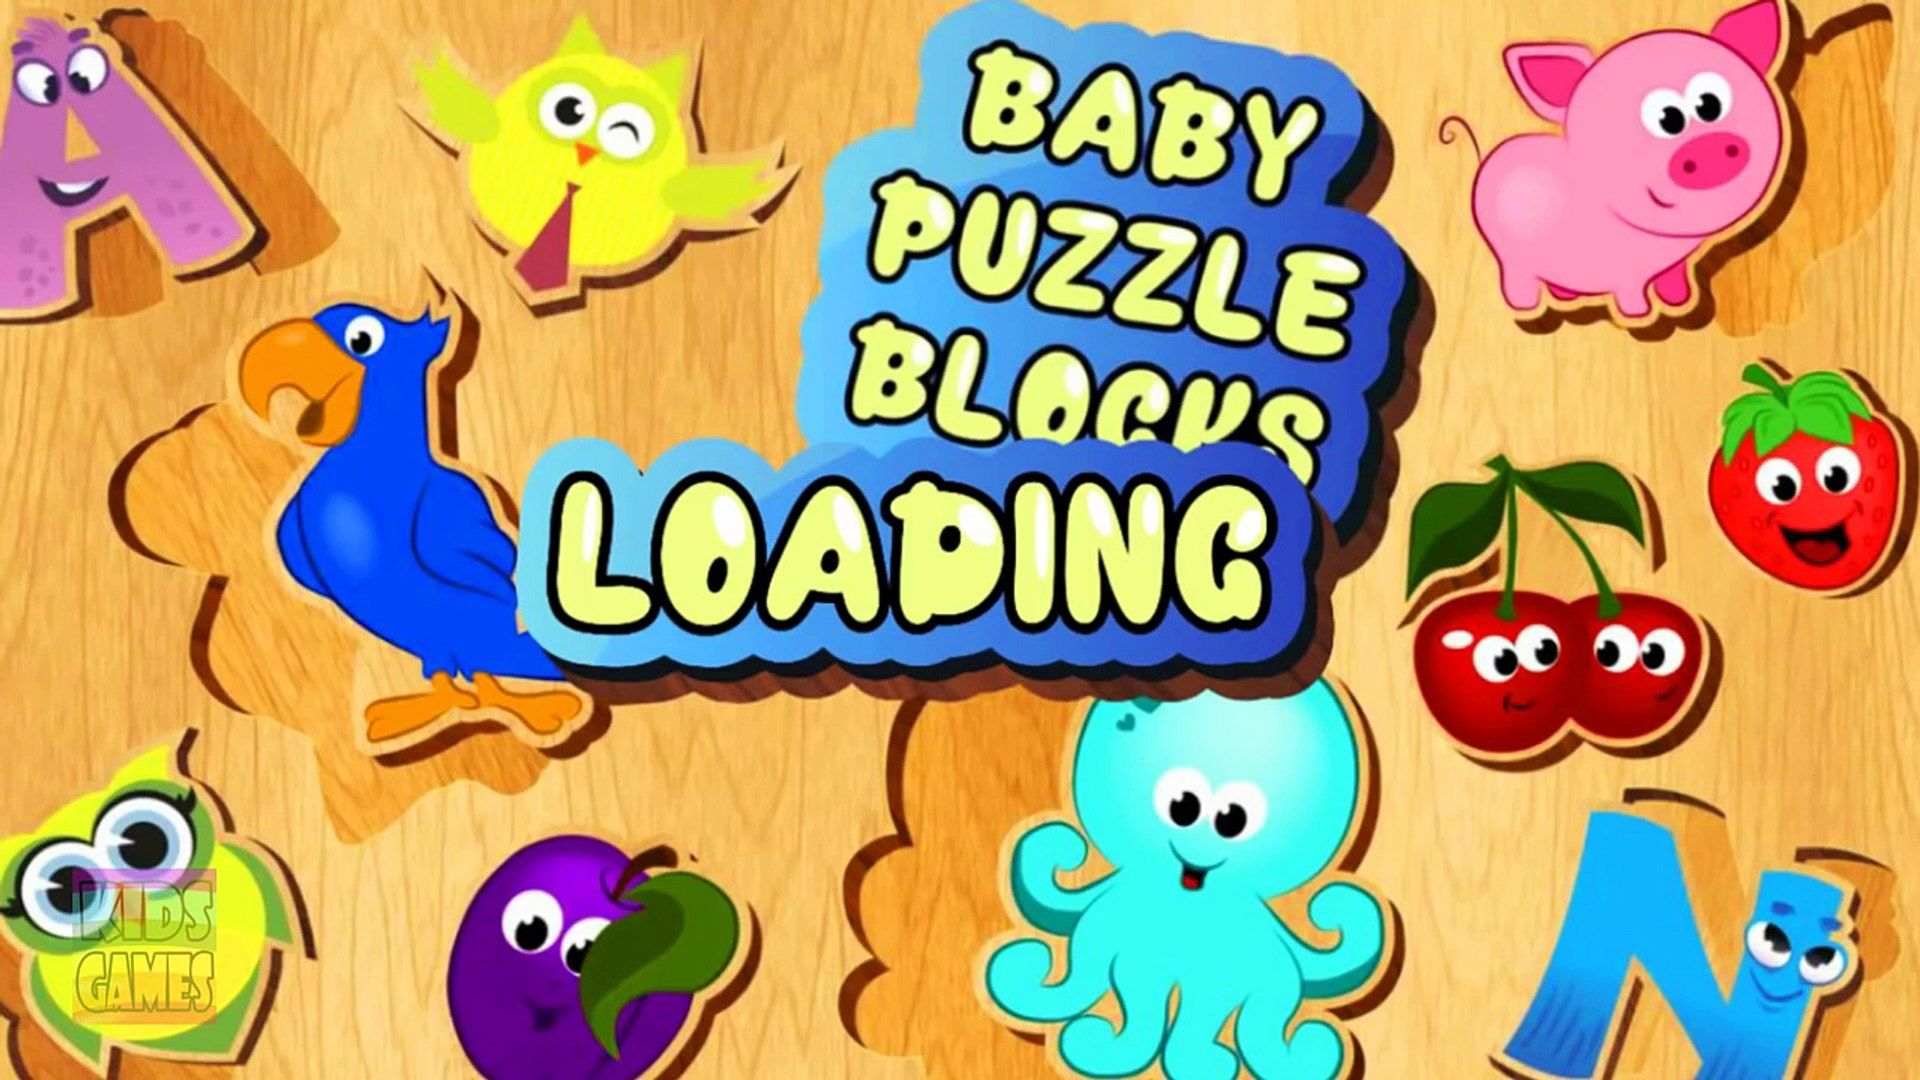 Puzzles For Kids. Education Video. Learning Game App for Toddlers.